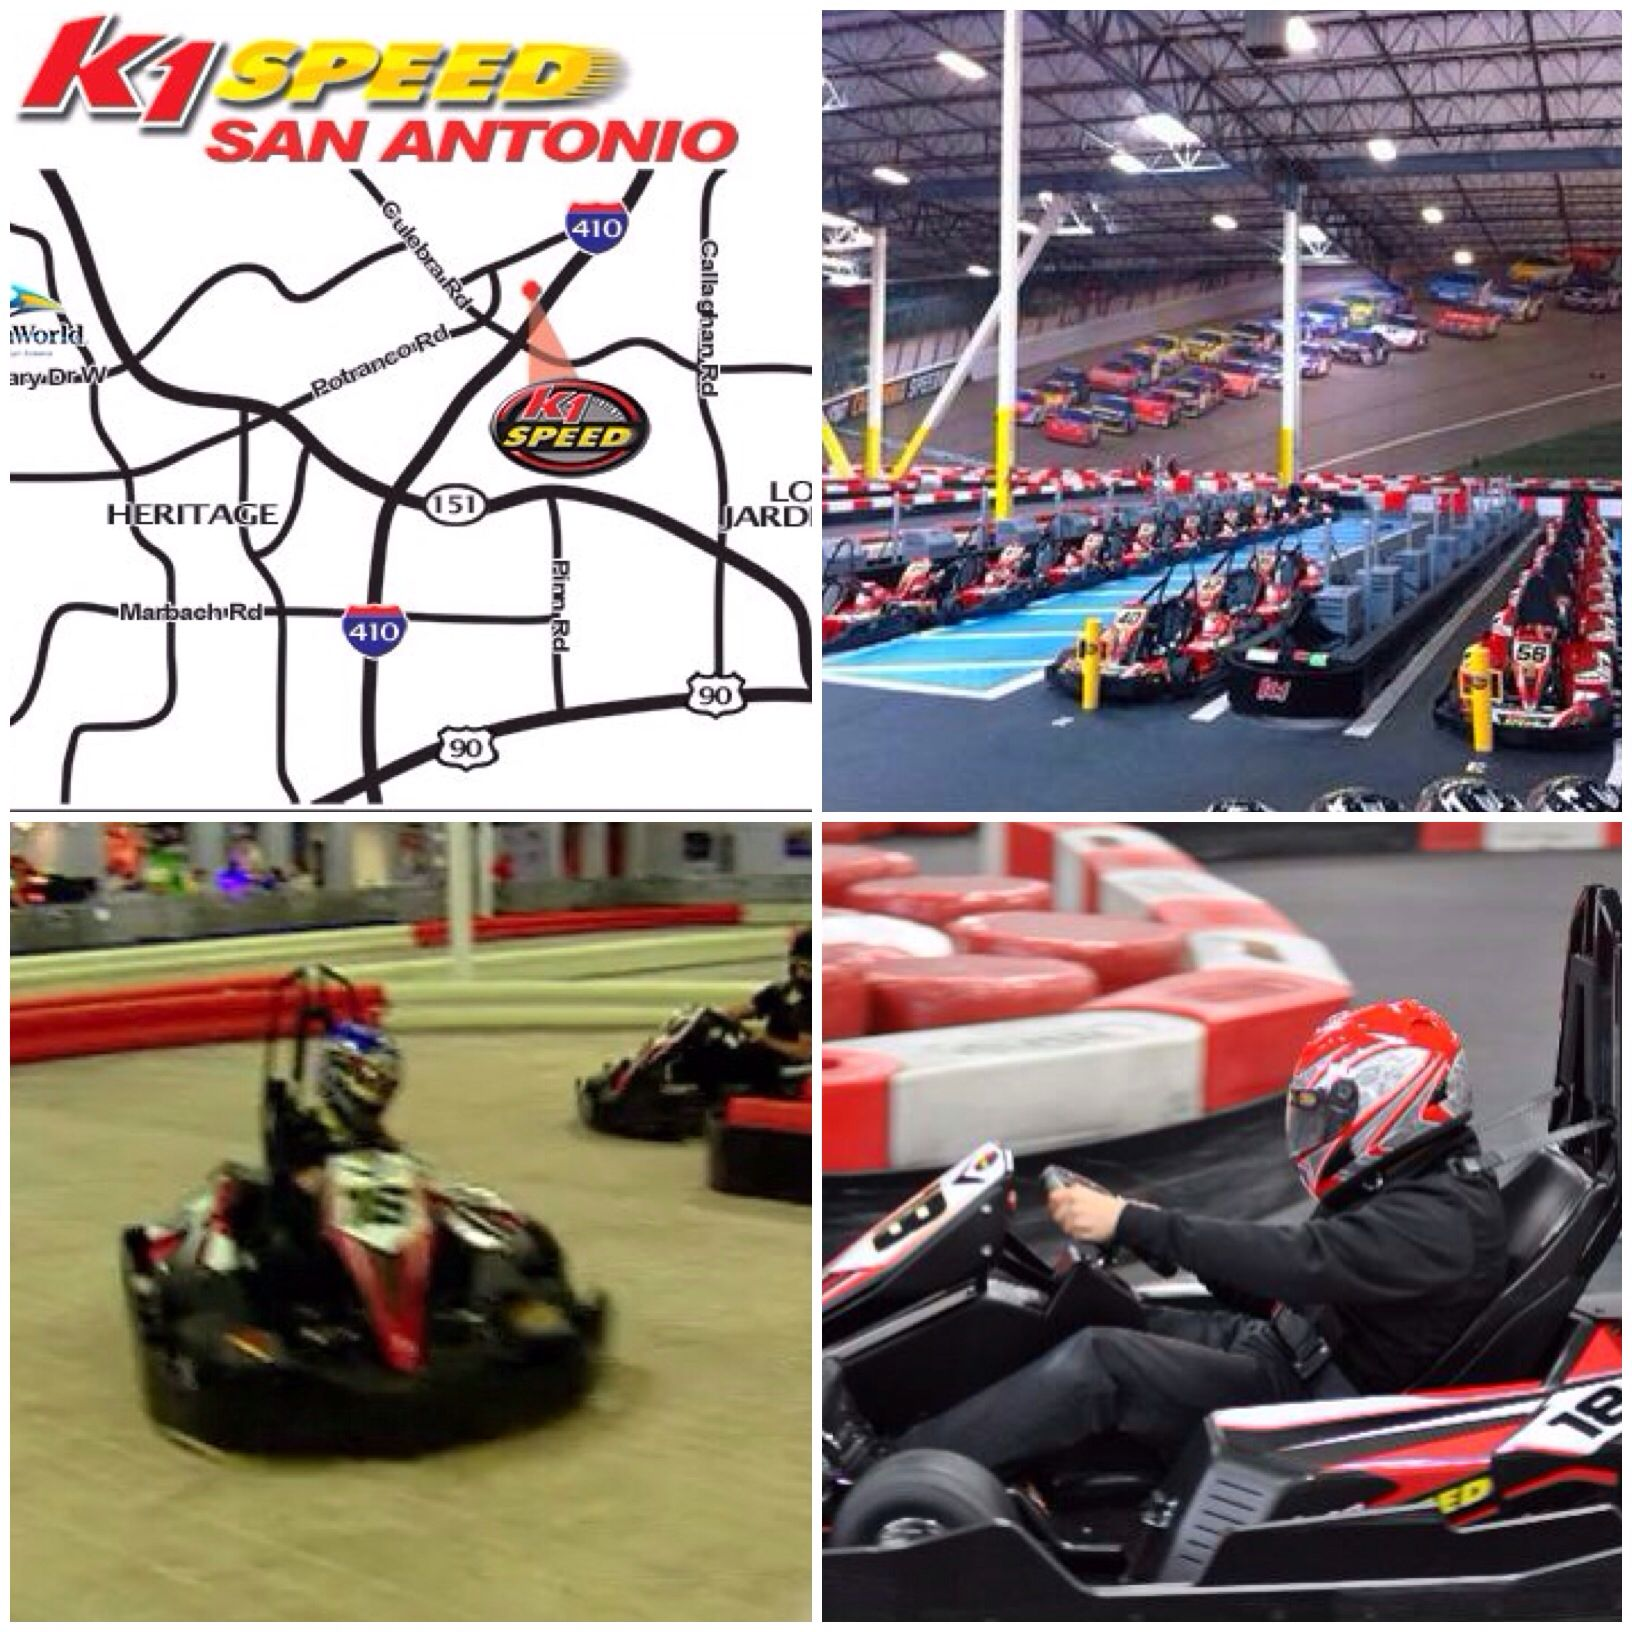 K1 Speed Has Introduced The Sport Of Indoor Go Kart Racing